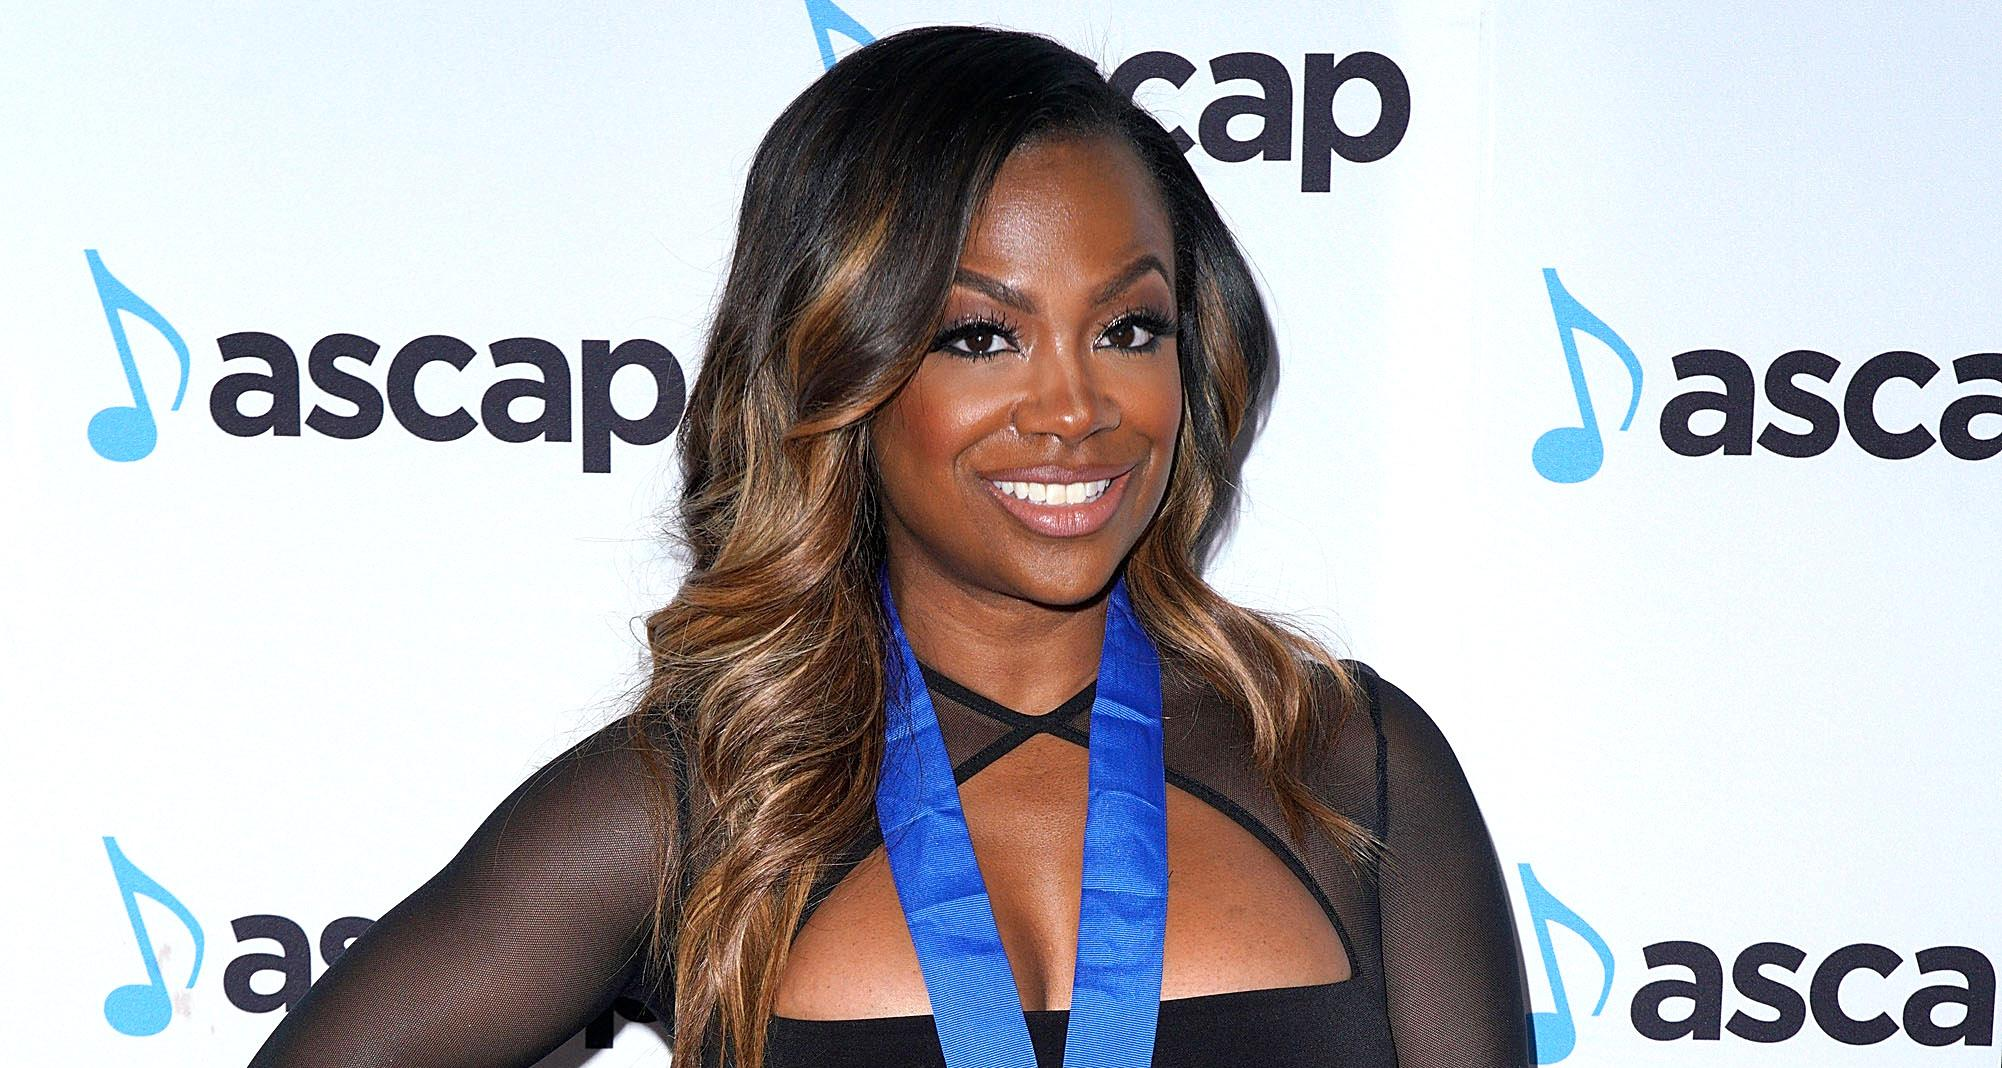 Kandi Burruss' Net Worth in 2018 is Estimated at $35 Million